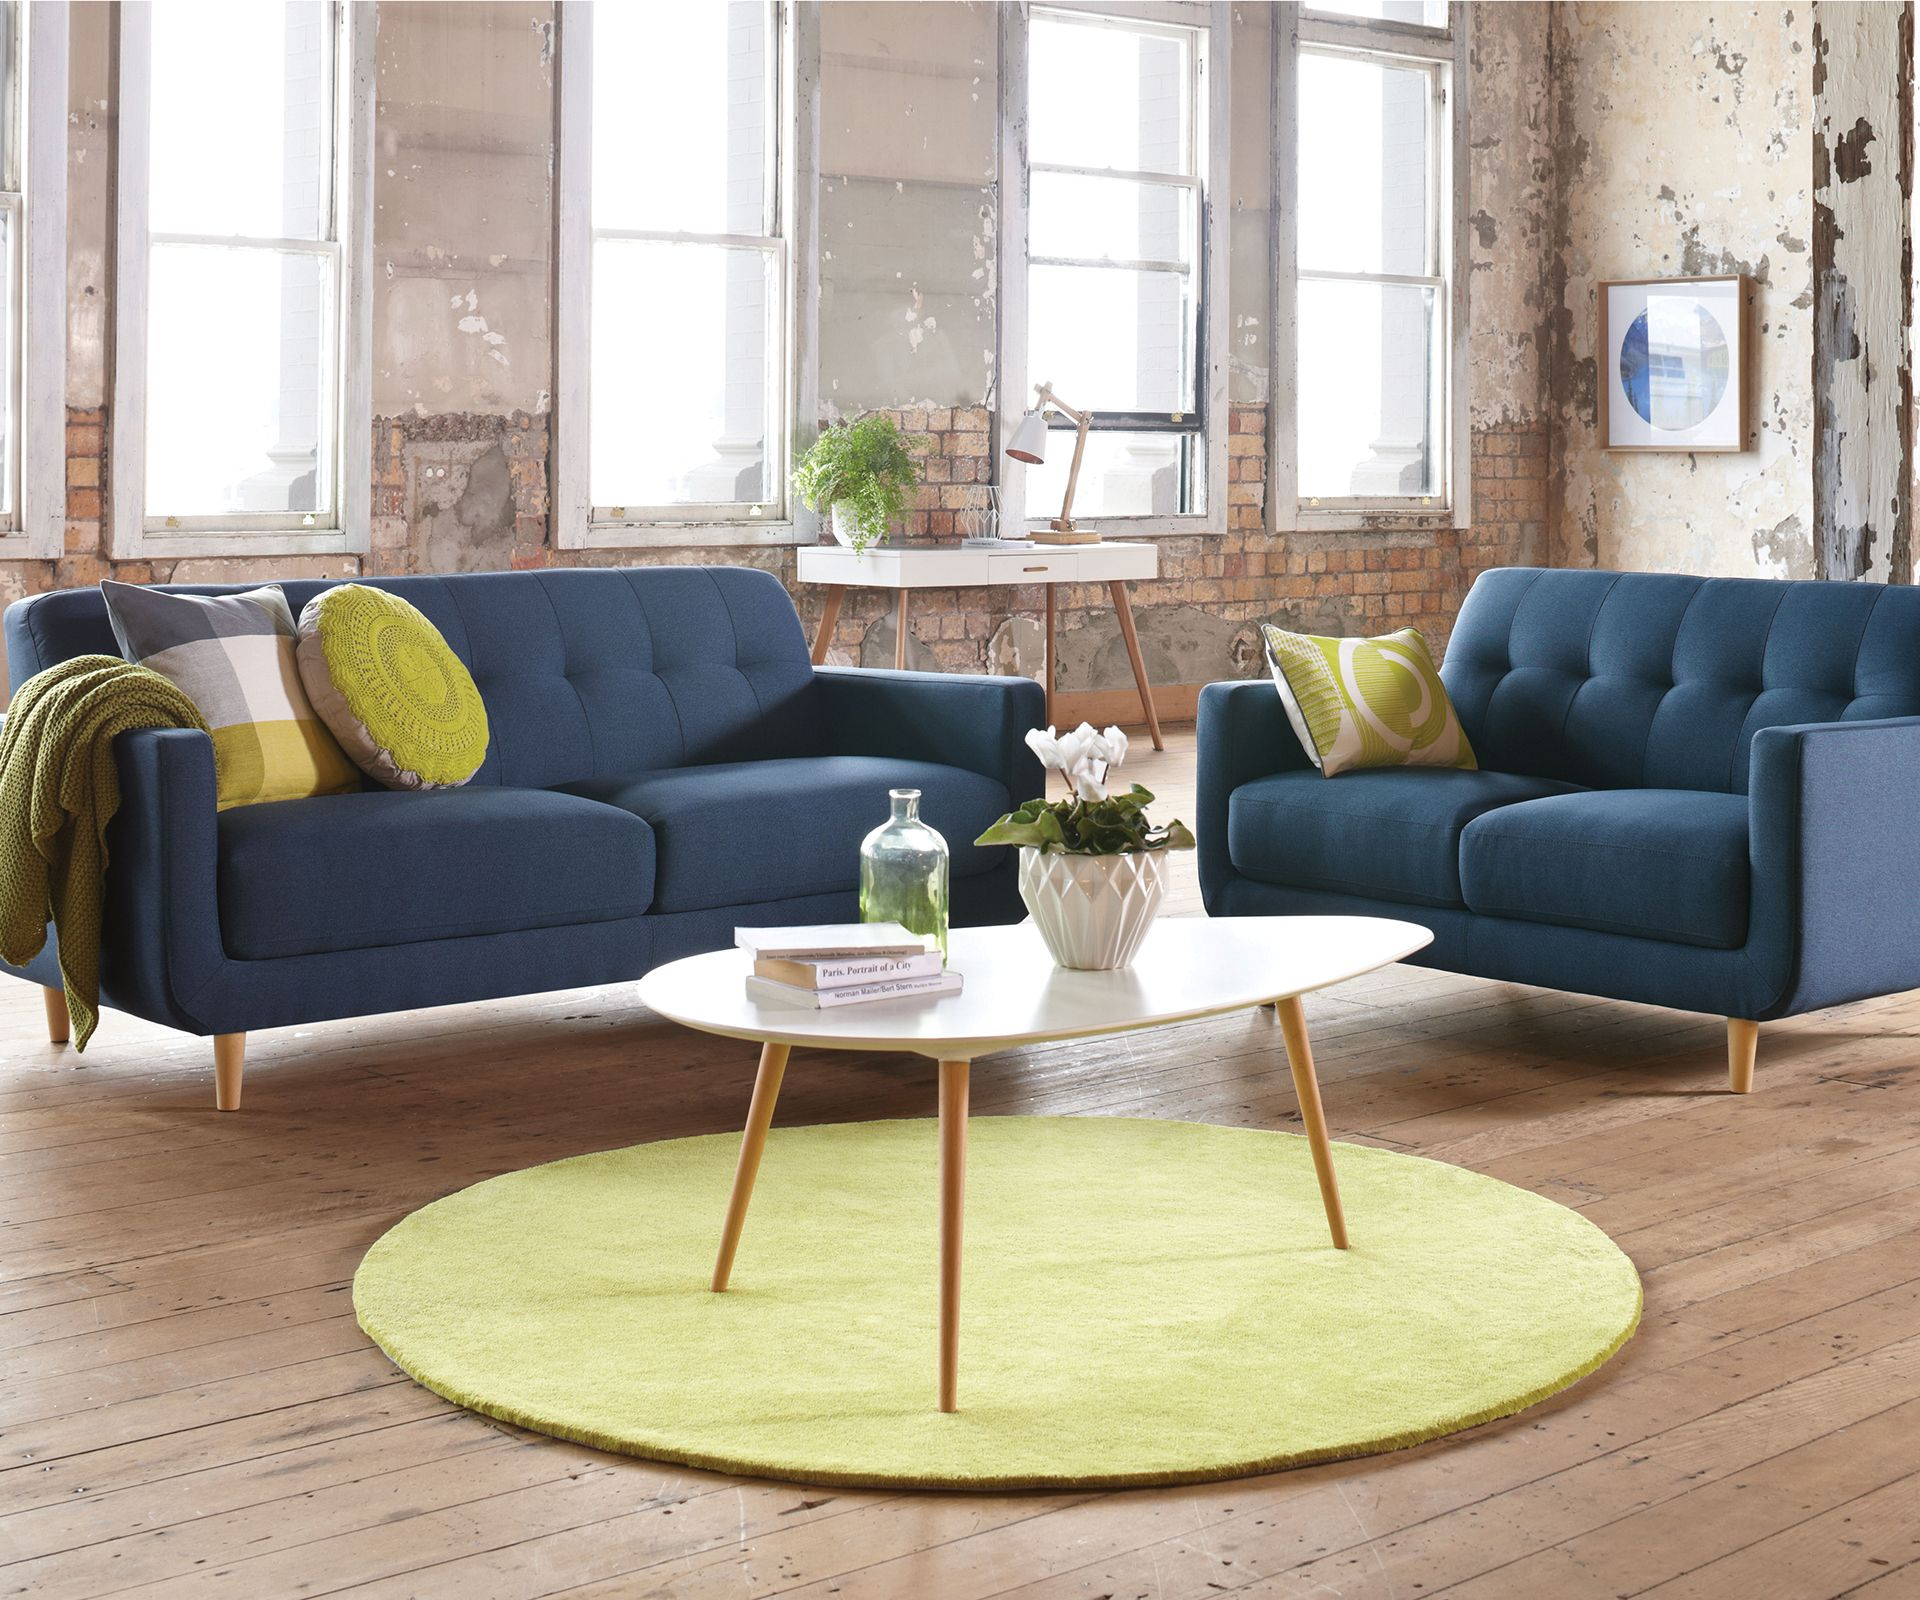 A New Lifestyle Centre Brings All Your Favourite Home Brands